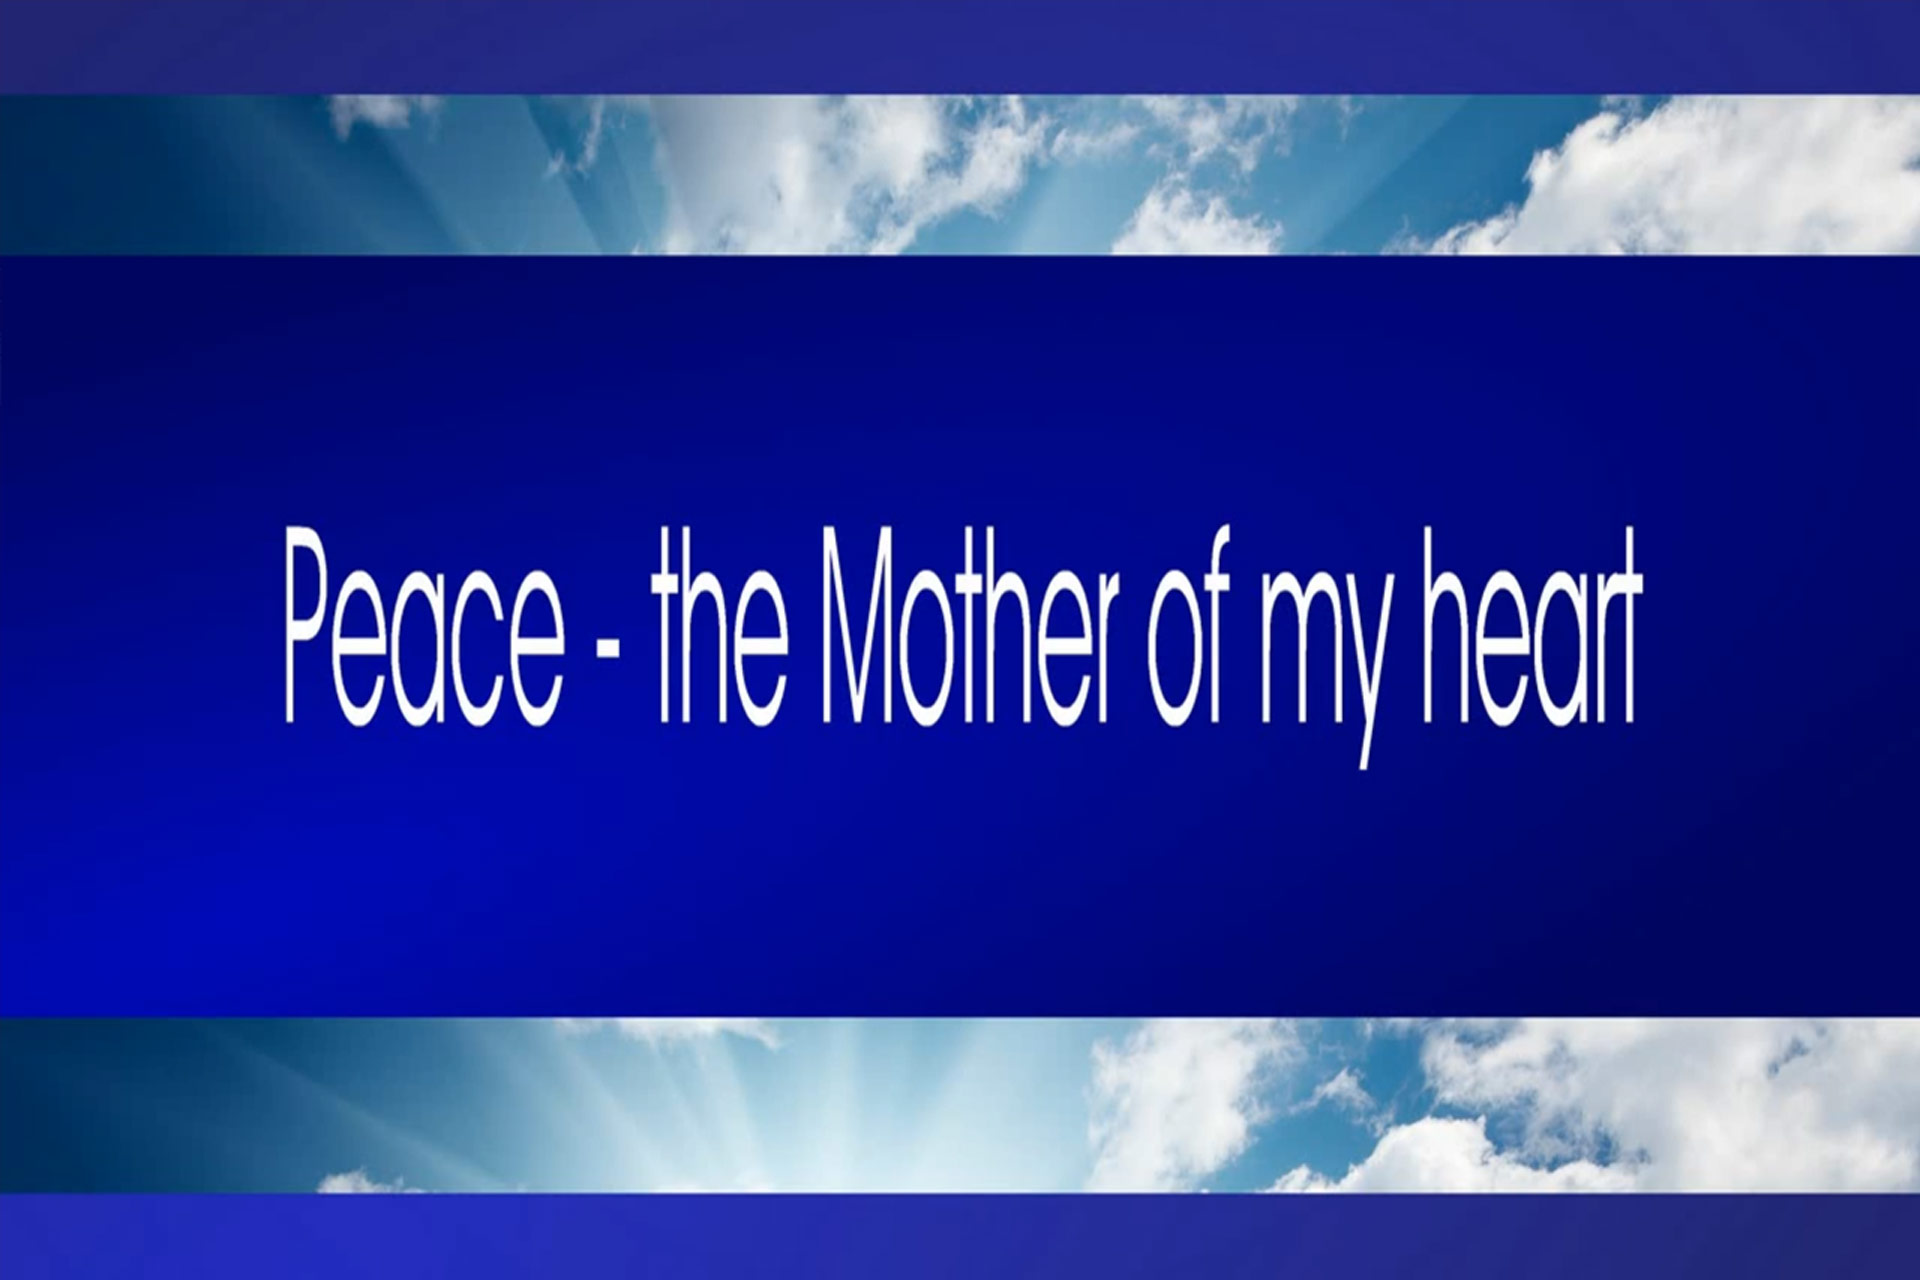 Peace - the Mother of my heart